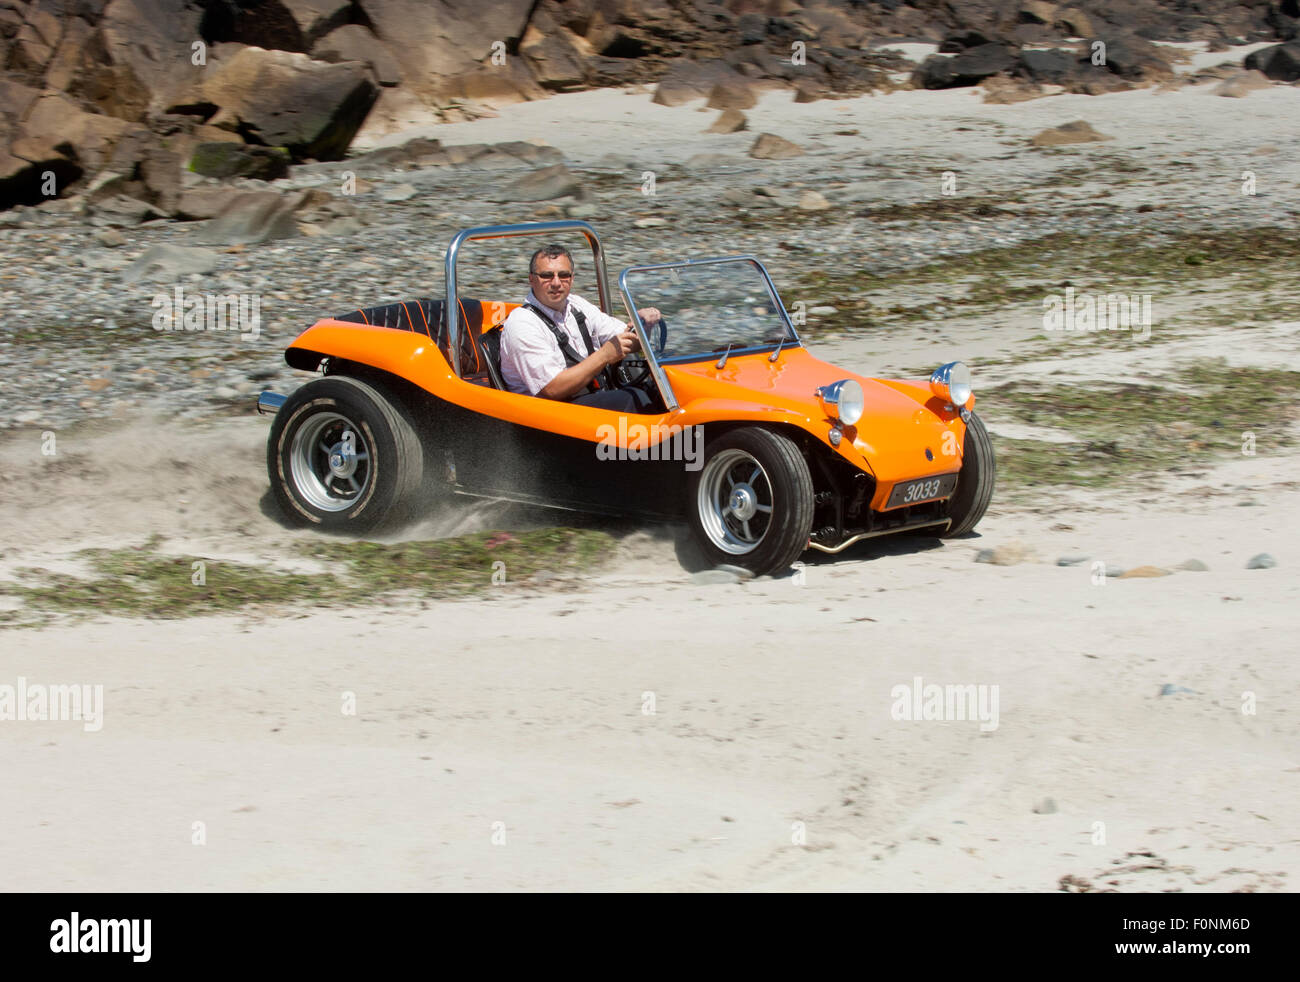 Beach Buggy On A Sandy Beach Vw Beetle Based Dune Buggy